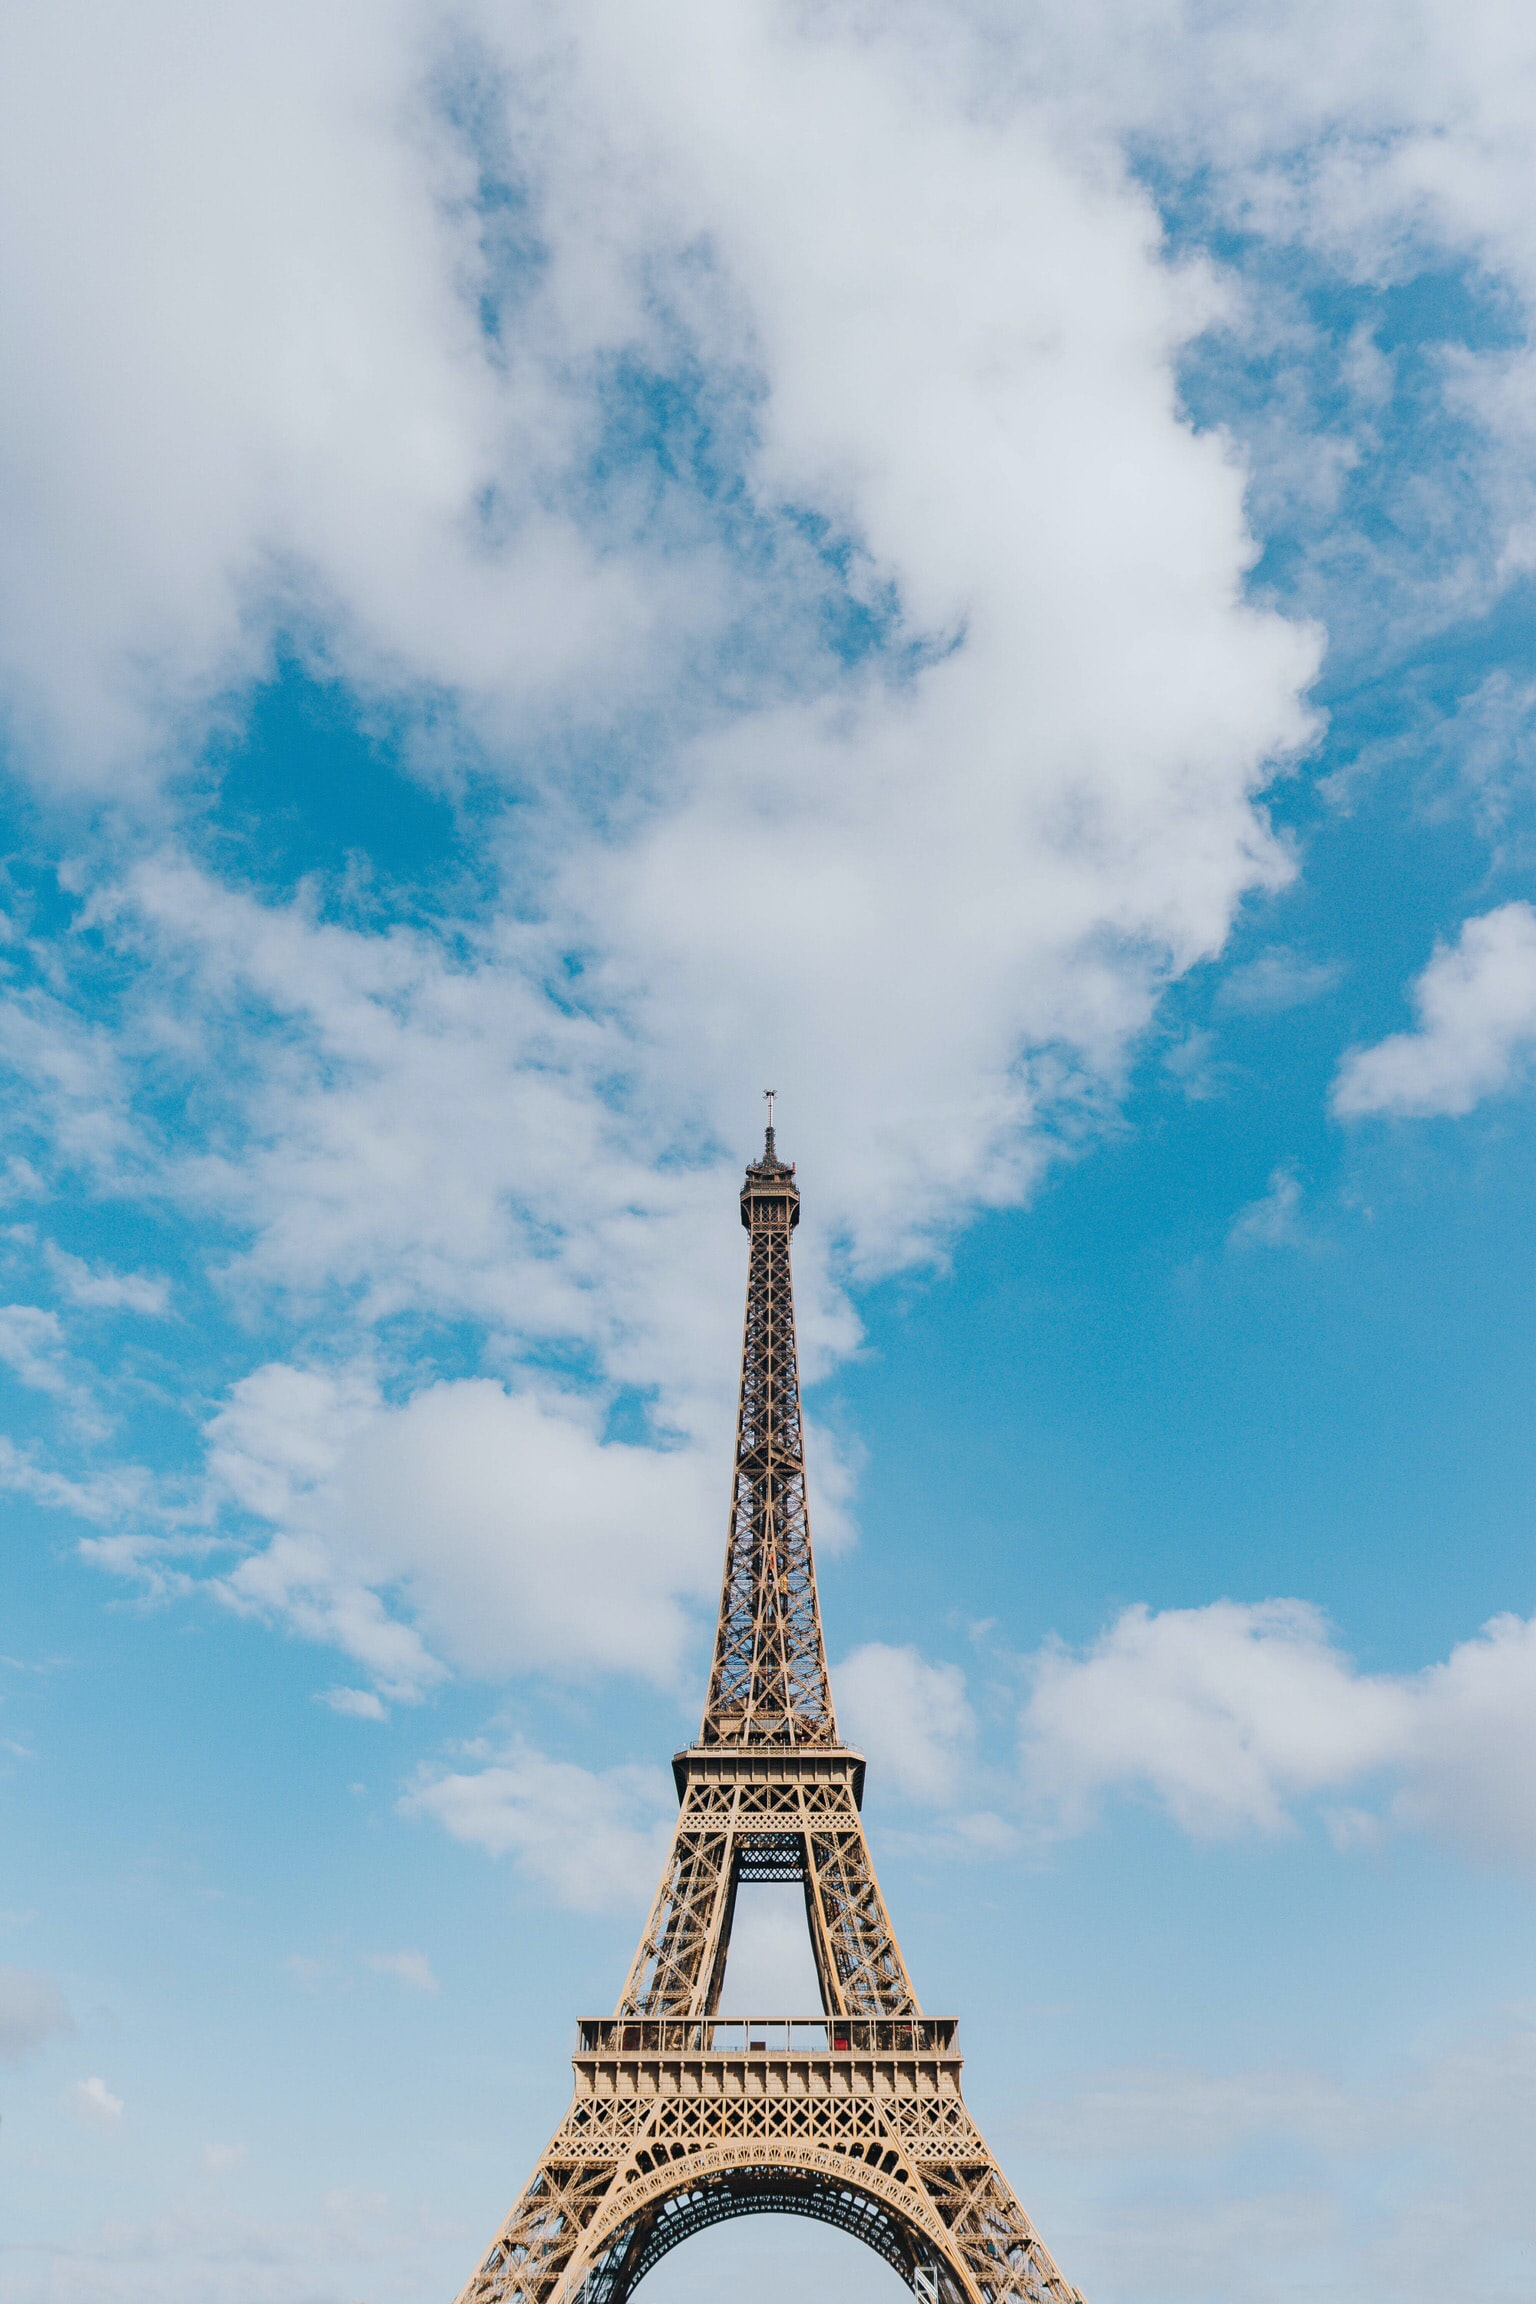 100+ eiffel-tower images - france [hd] | download free images on